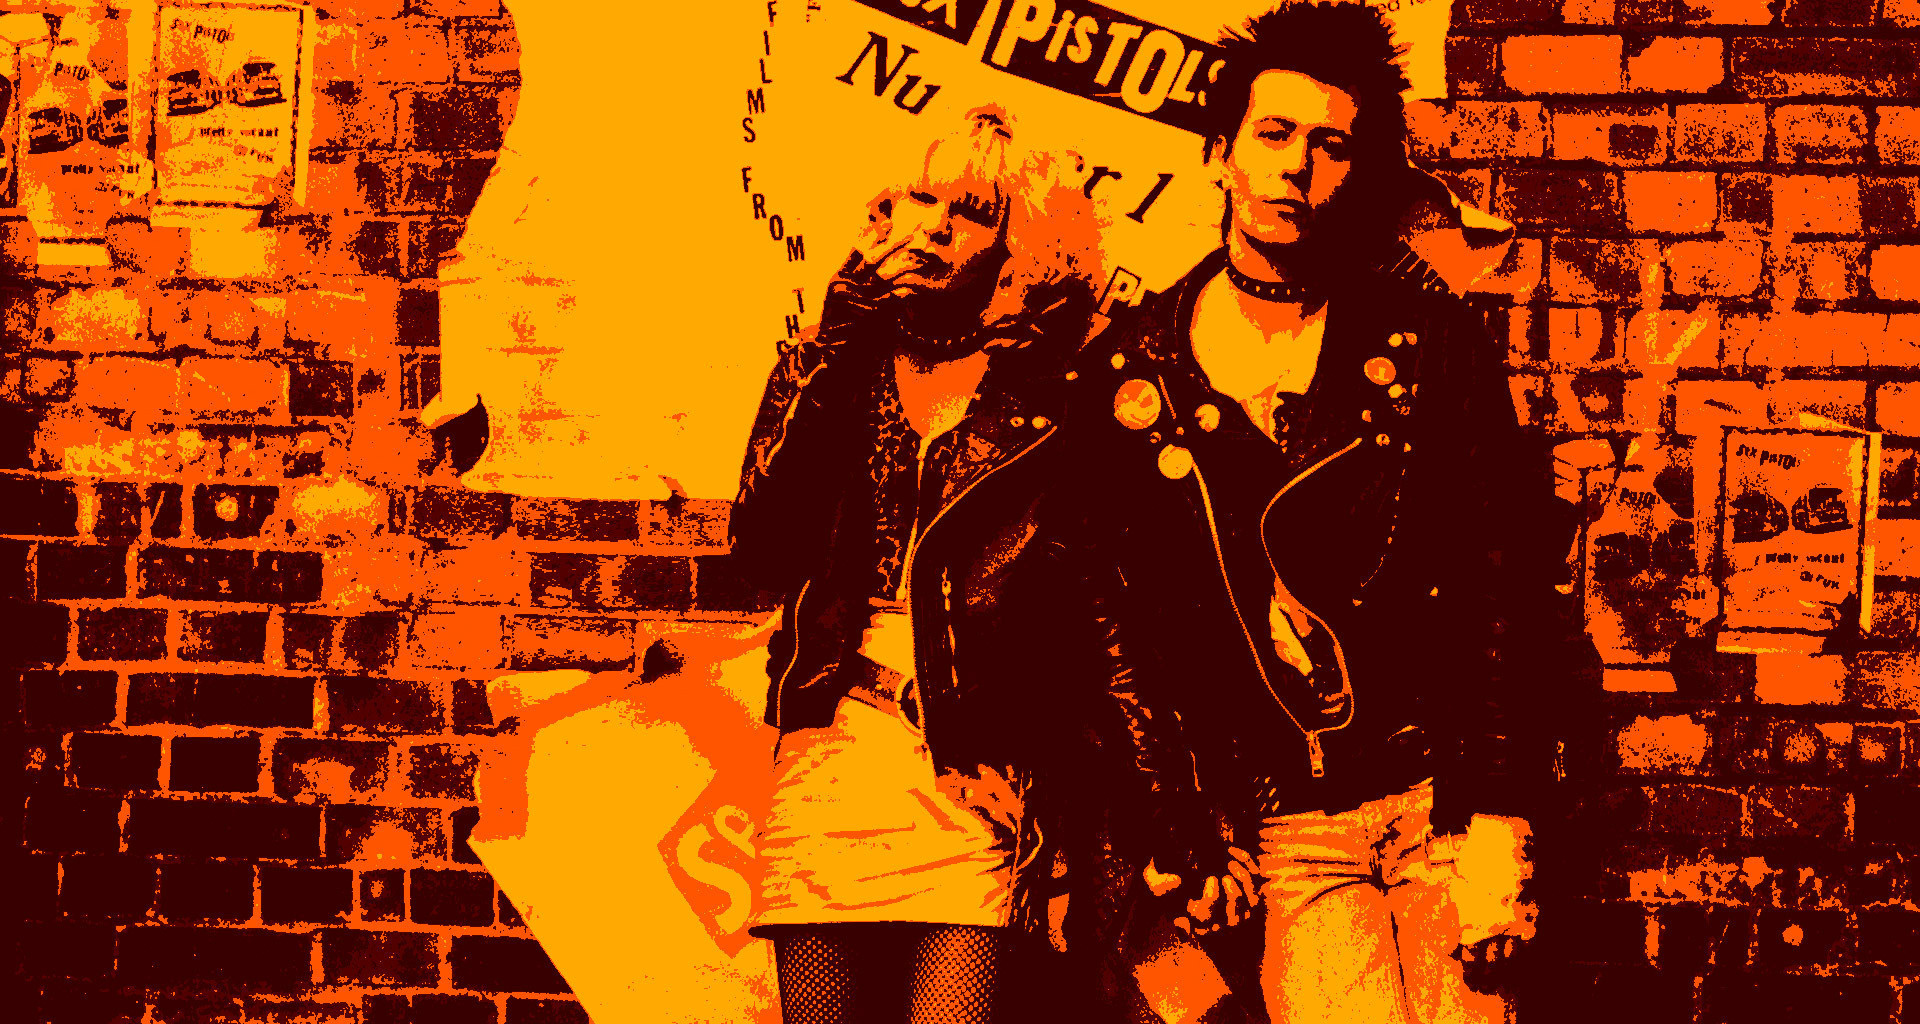 Сид и Ненси (Sid and Nancy, 1986)